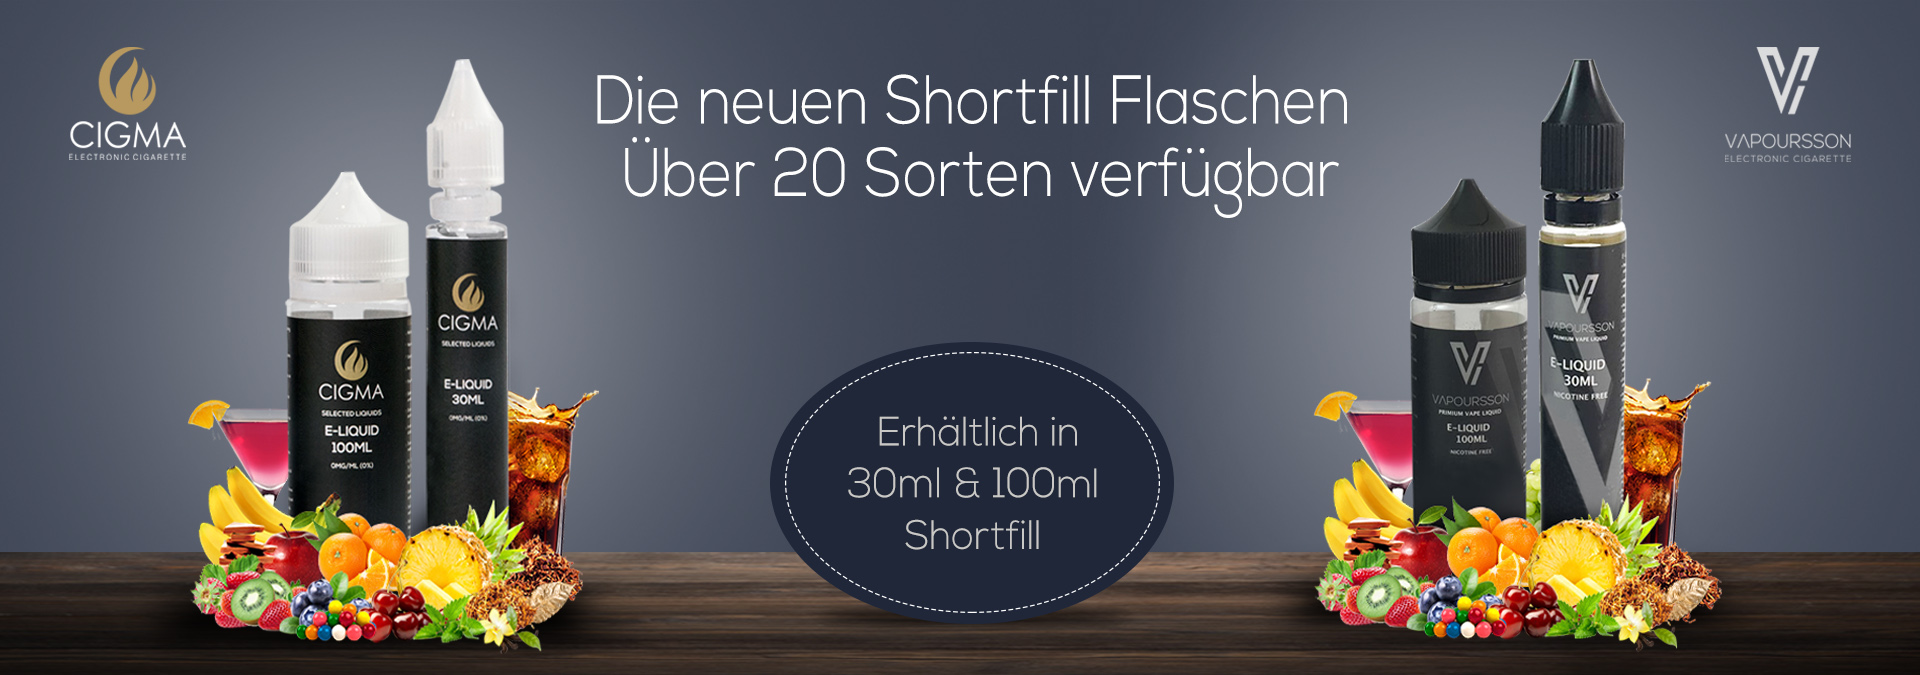 Shortfill-website-banner-DE-2